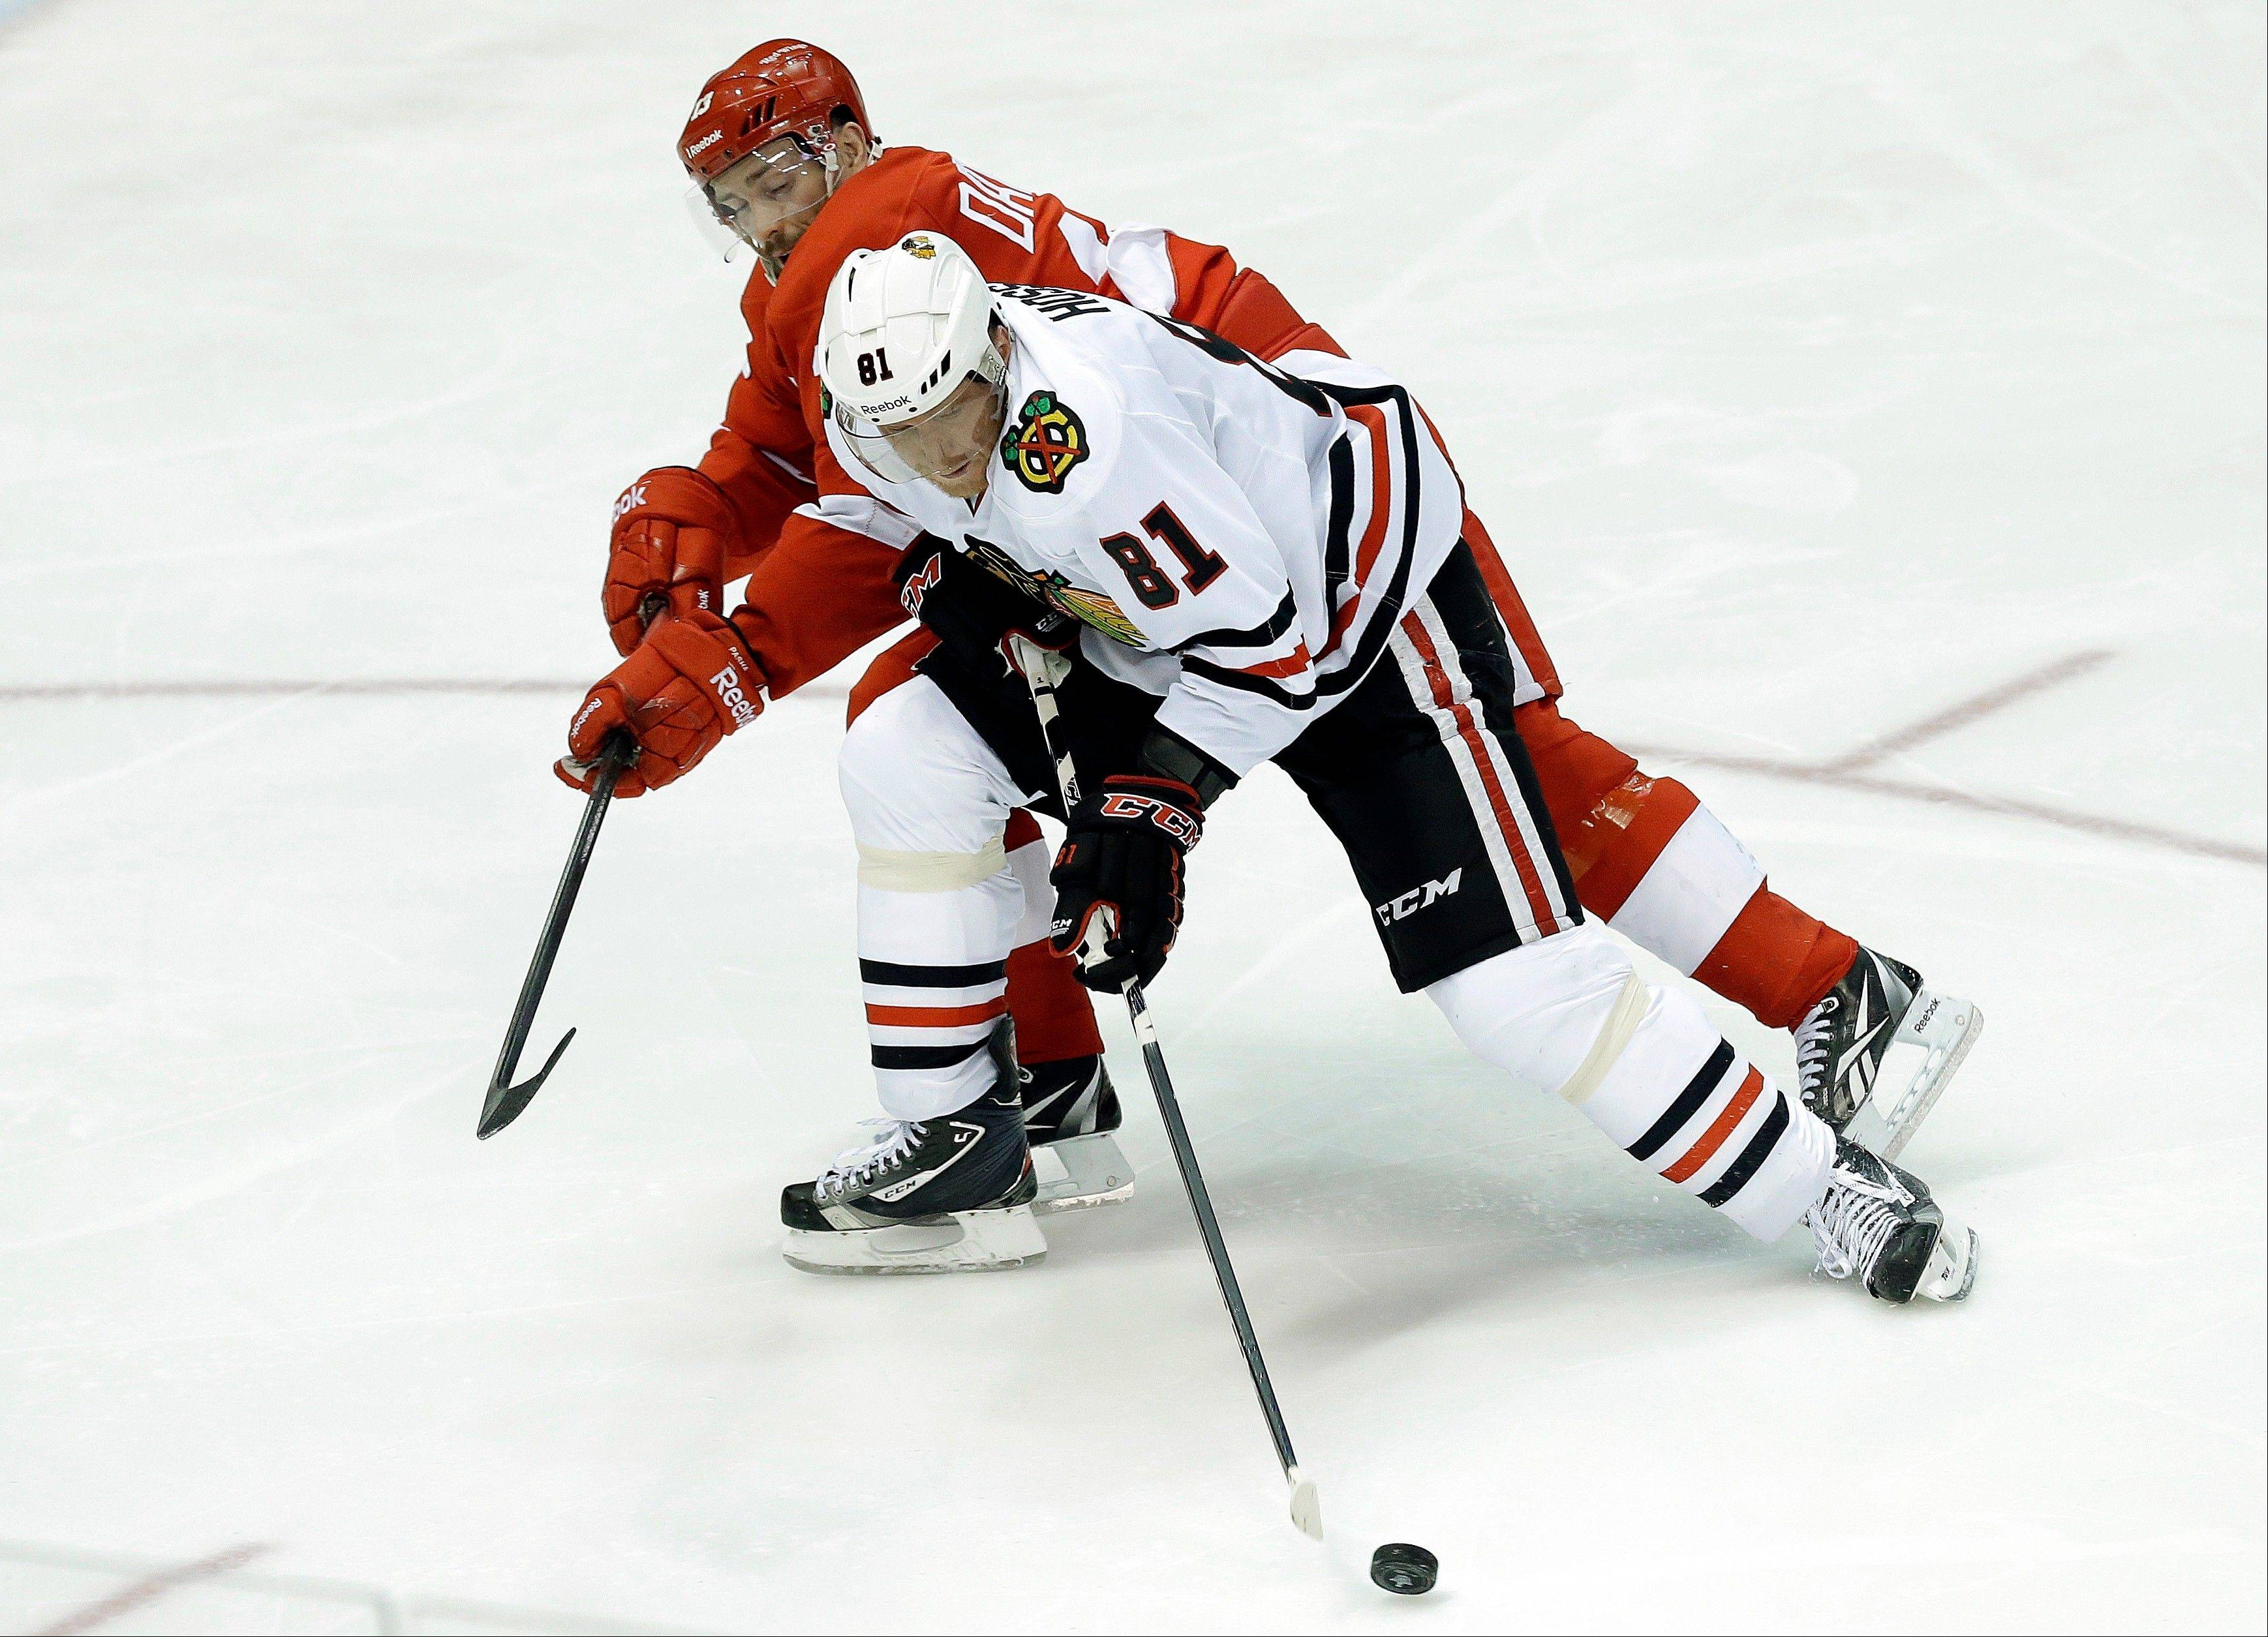 Chicago Blackhawks right wing Marian Hossa (81), of the Czech Republic, shields the puck from Detroit Red Wings center Pavel Datsyuk (13), of Russia, during the second period.